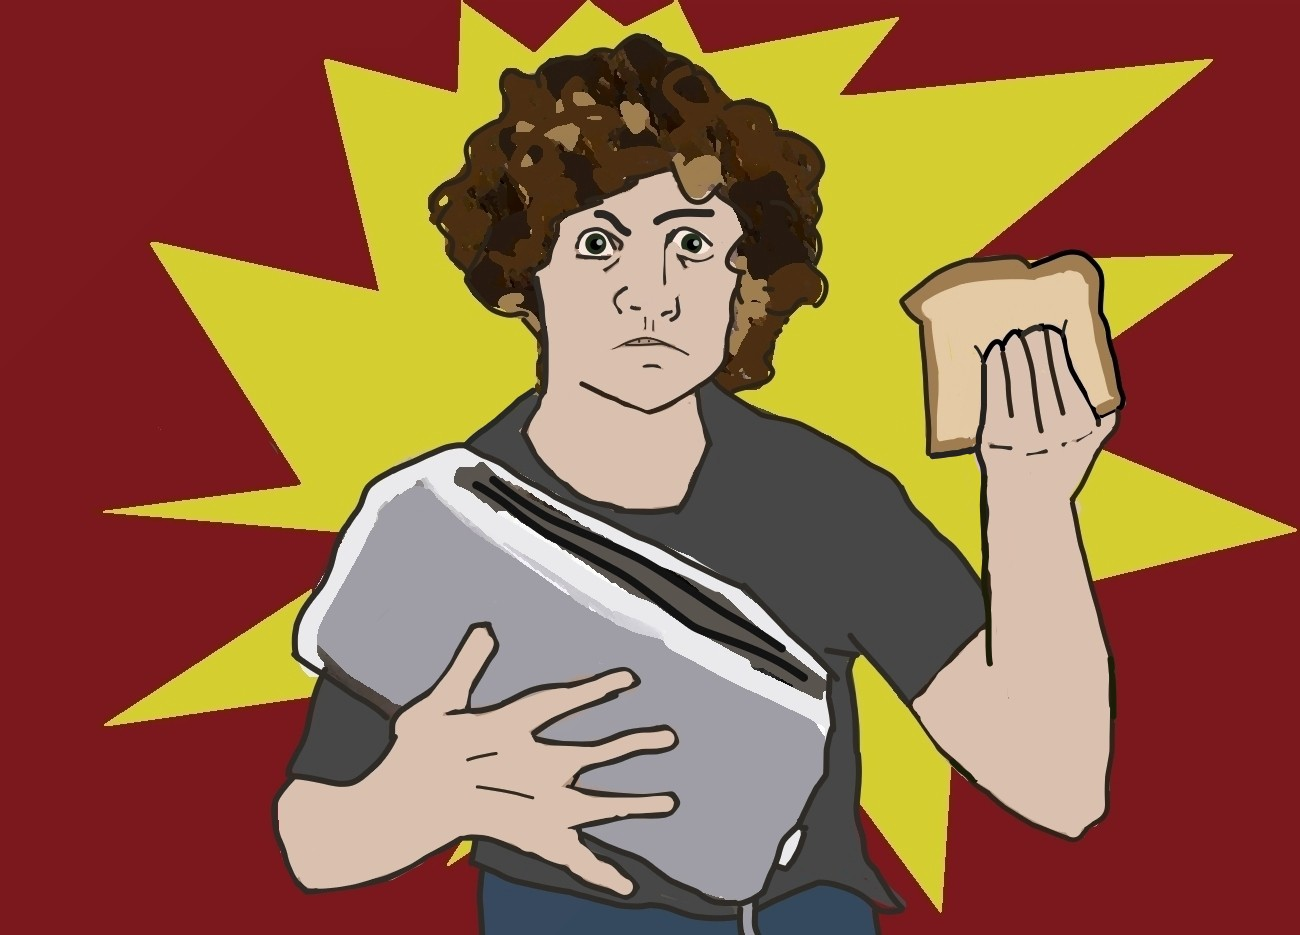 Angry man holding toaster and bread